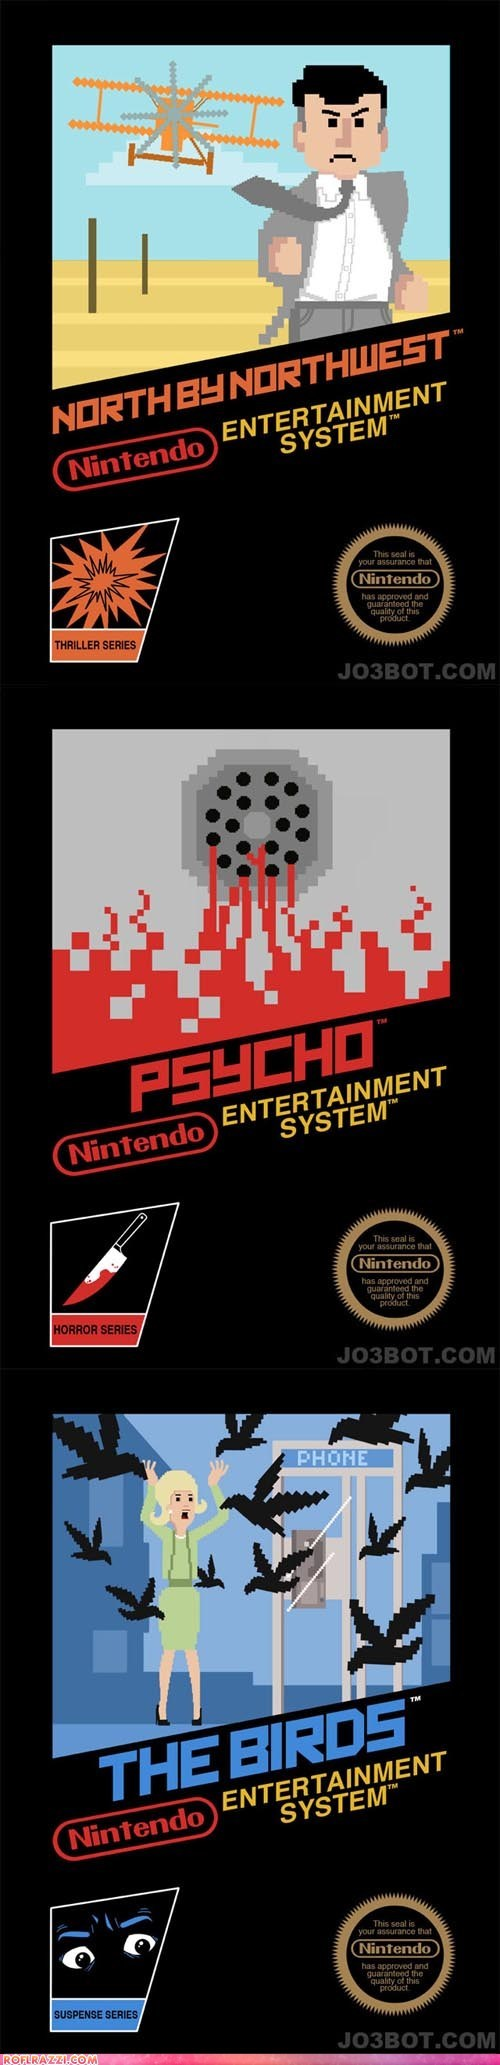 Famous Alfred Hitchcock Movies as Nintendo Games